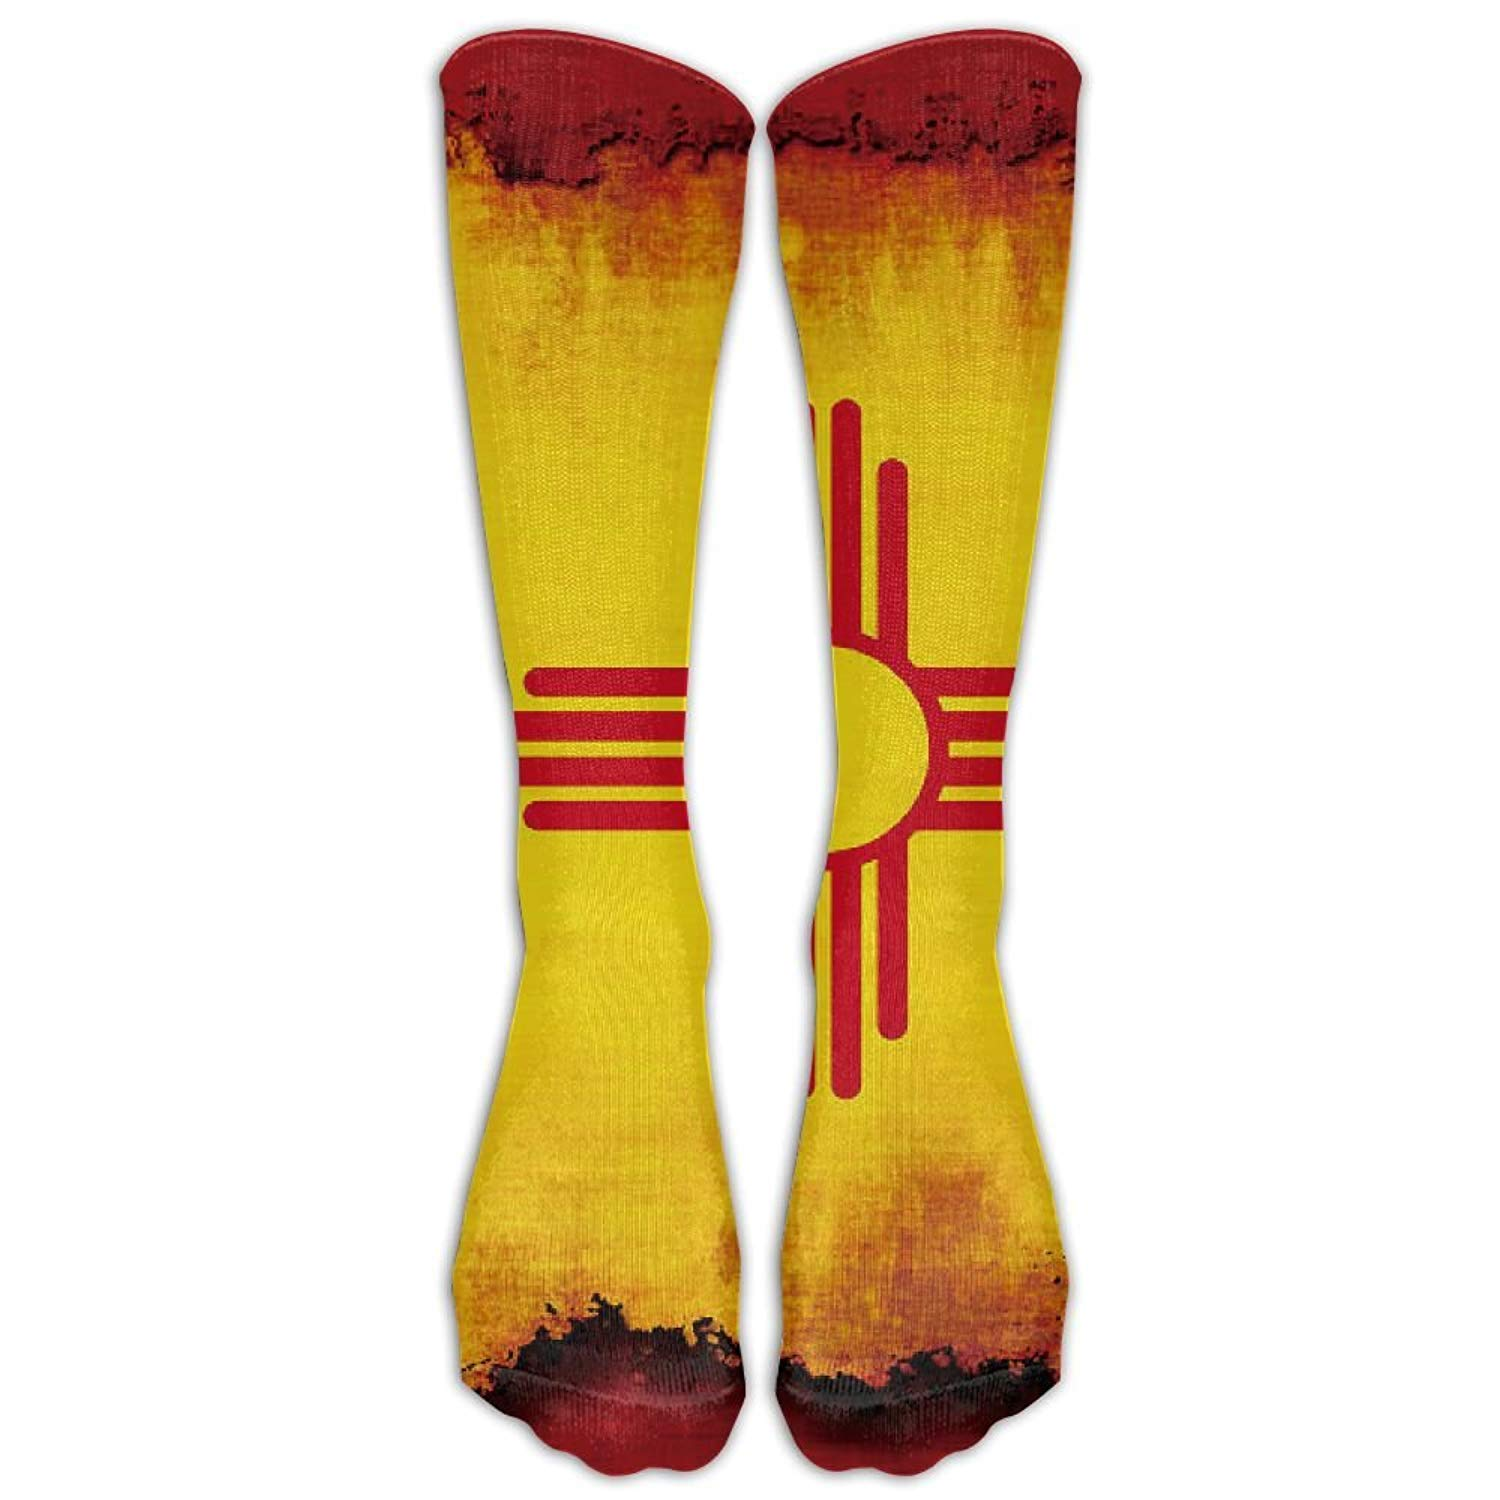 Amazon.com: New Mexico Flag Grunge Long Novelty Socks Calf High Outdoor Sock Unisex: Health & Personal Care